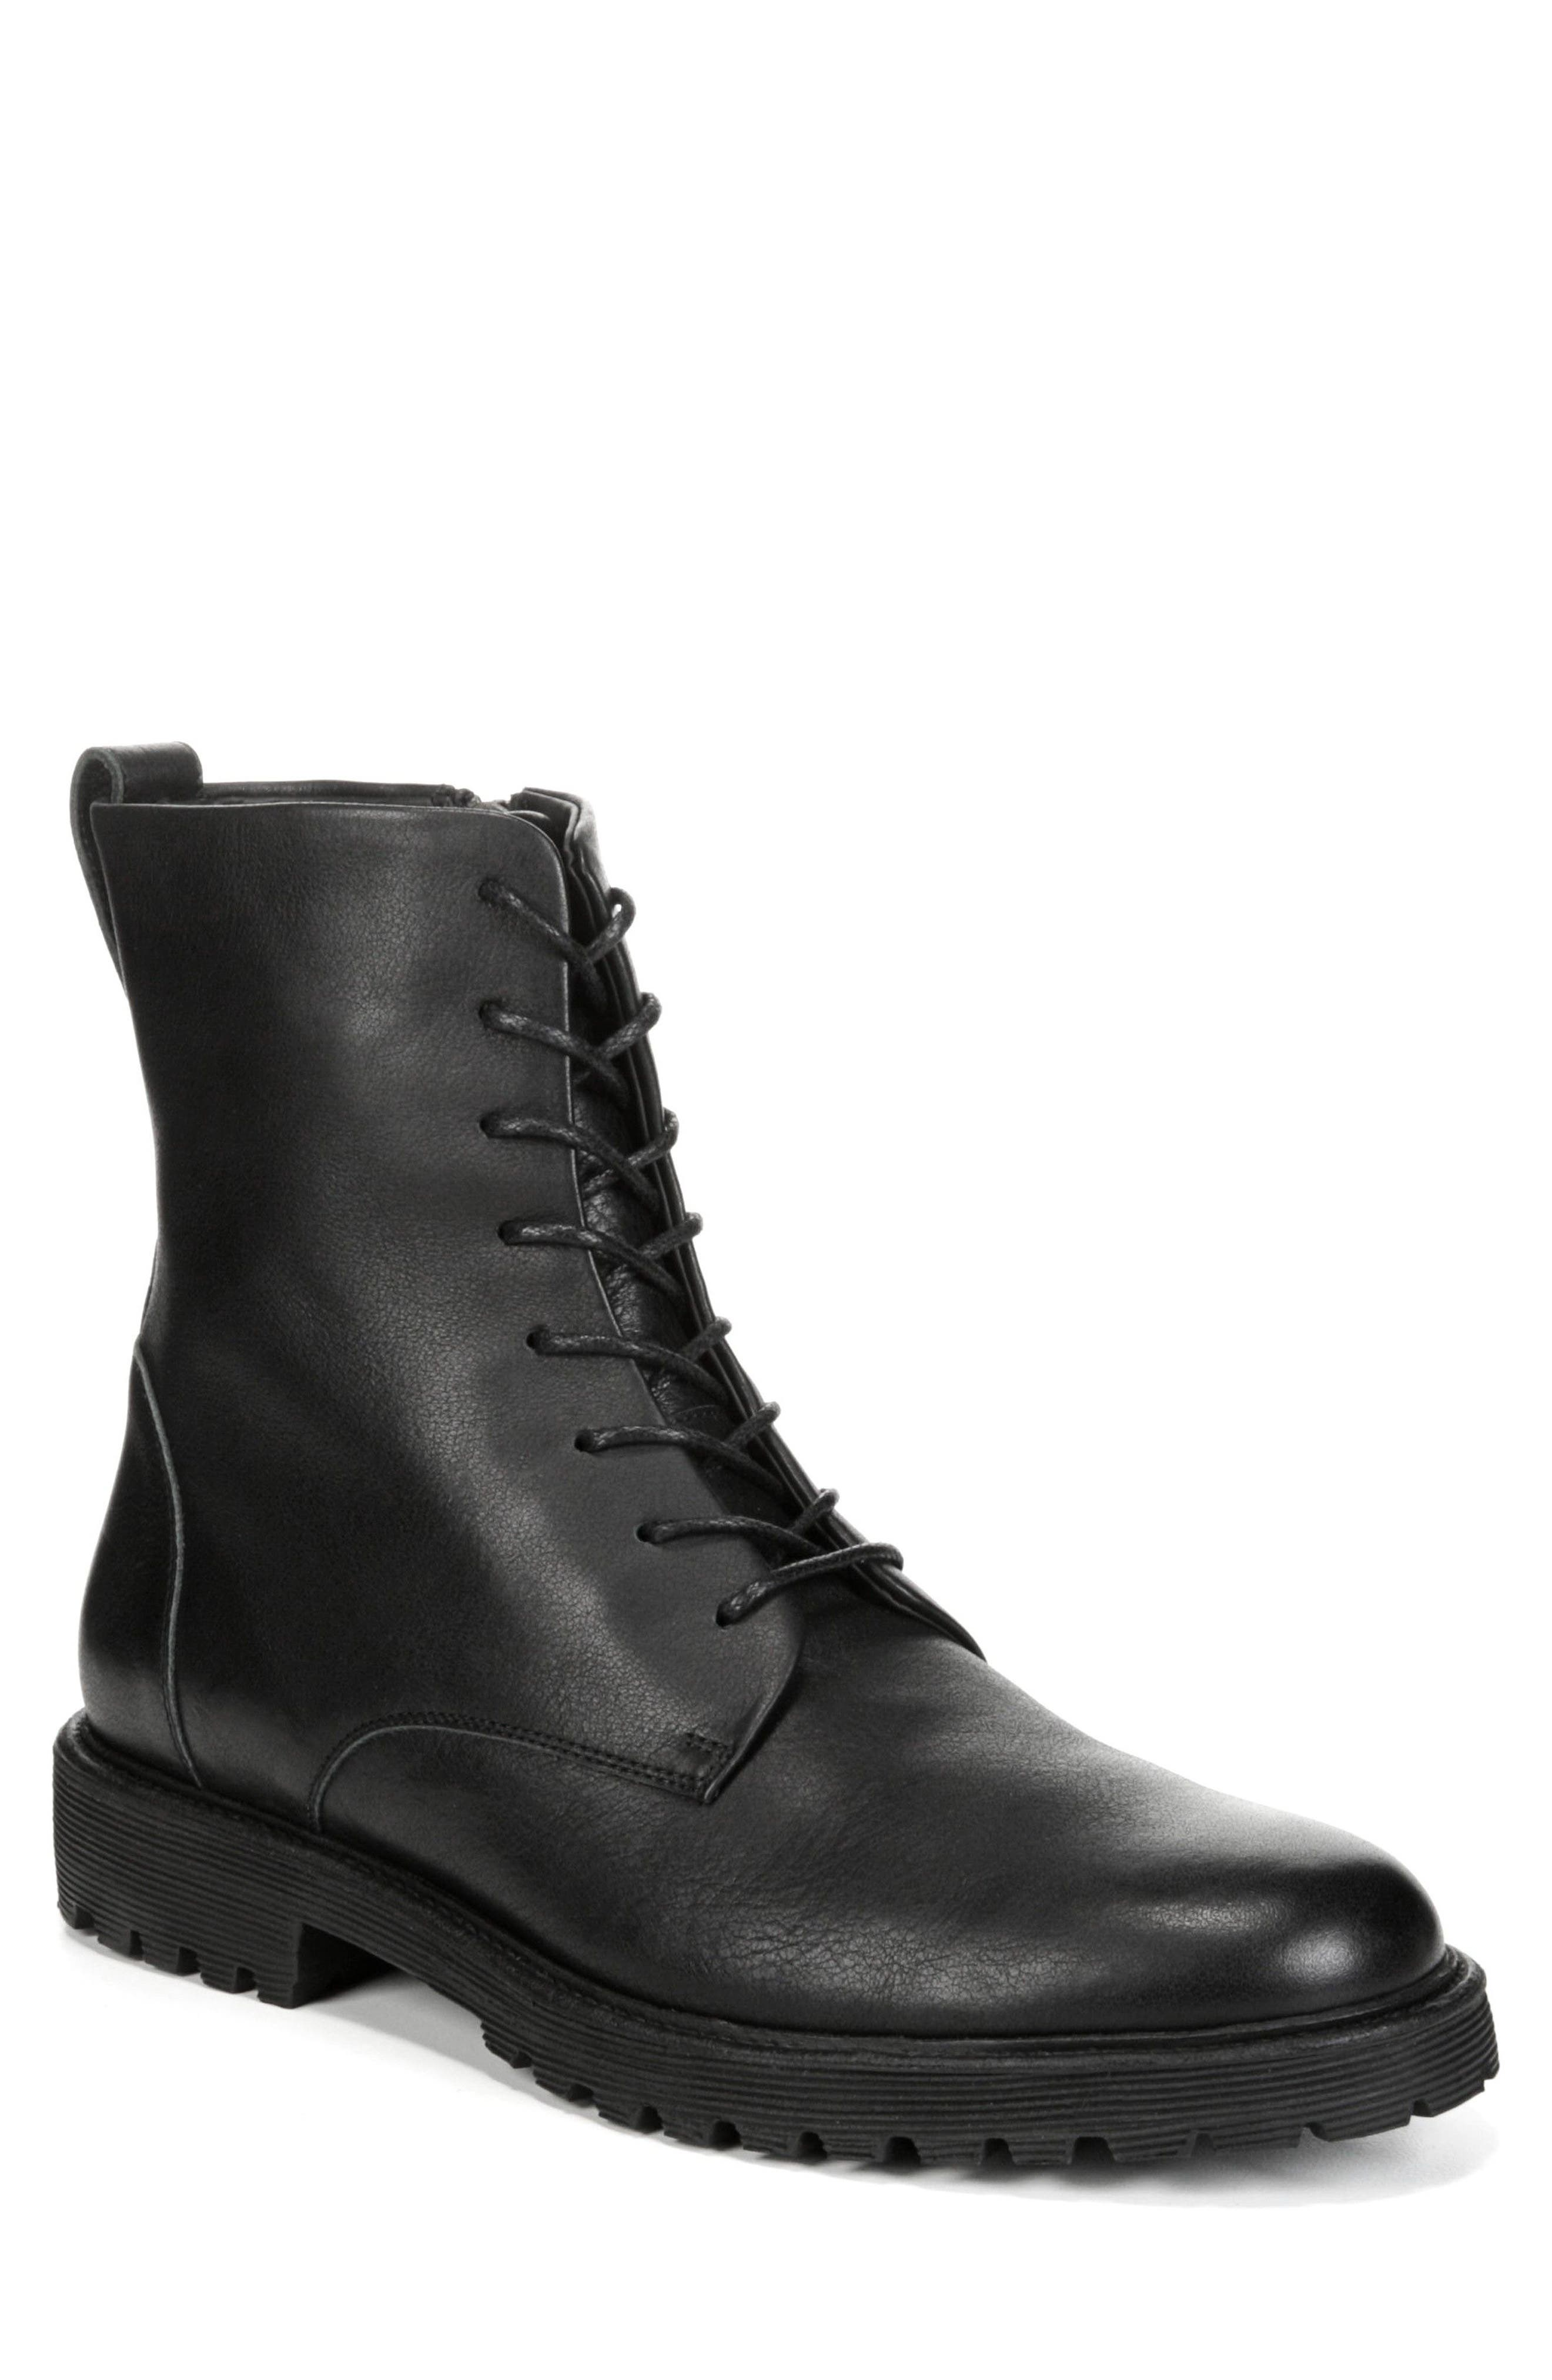 Brigade Plain Toe Boot,                             Main thumbnail 1, color,                             Black